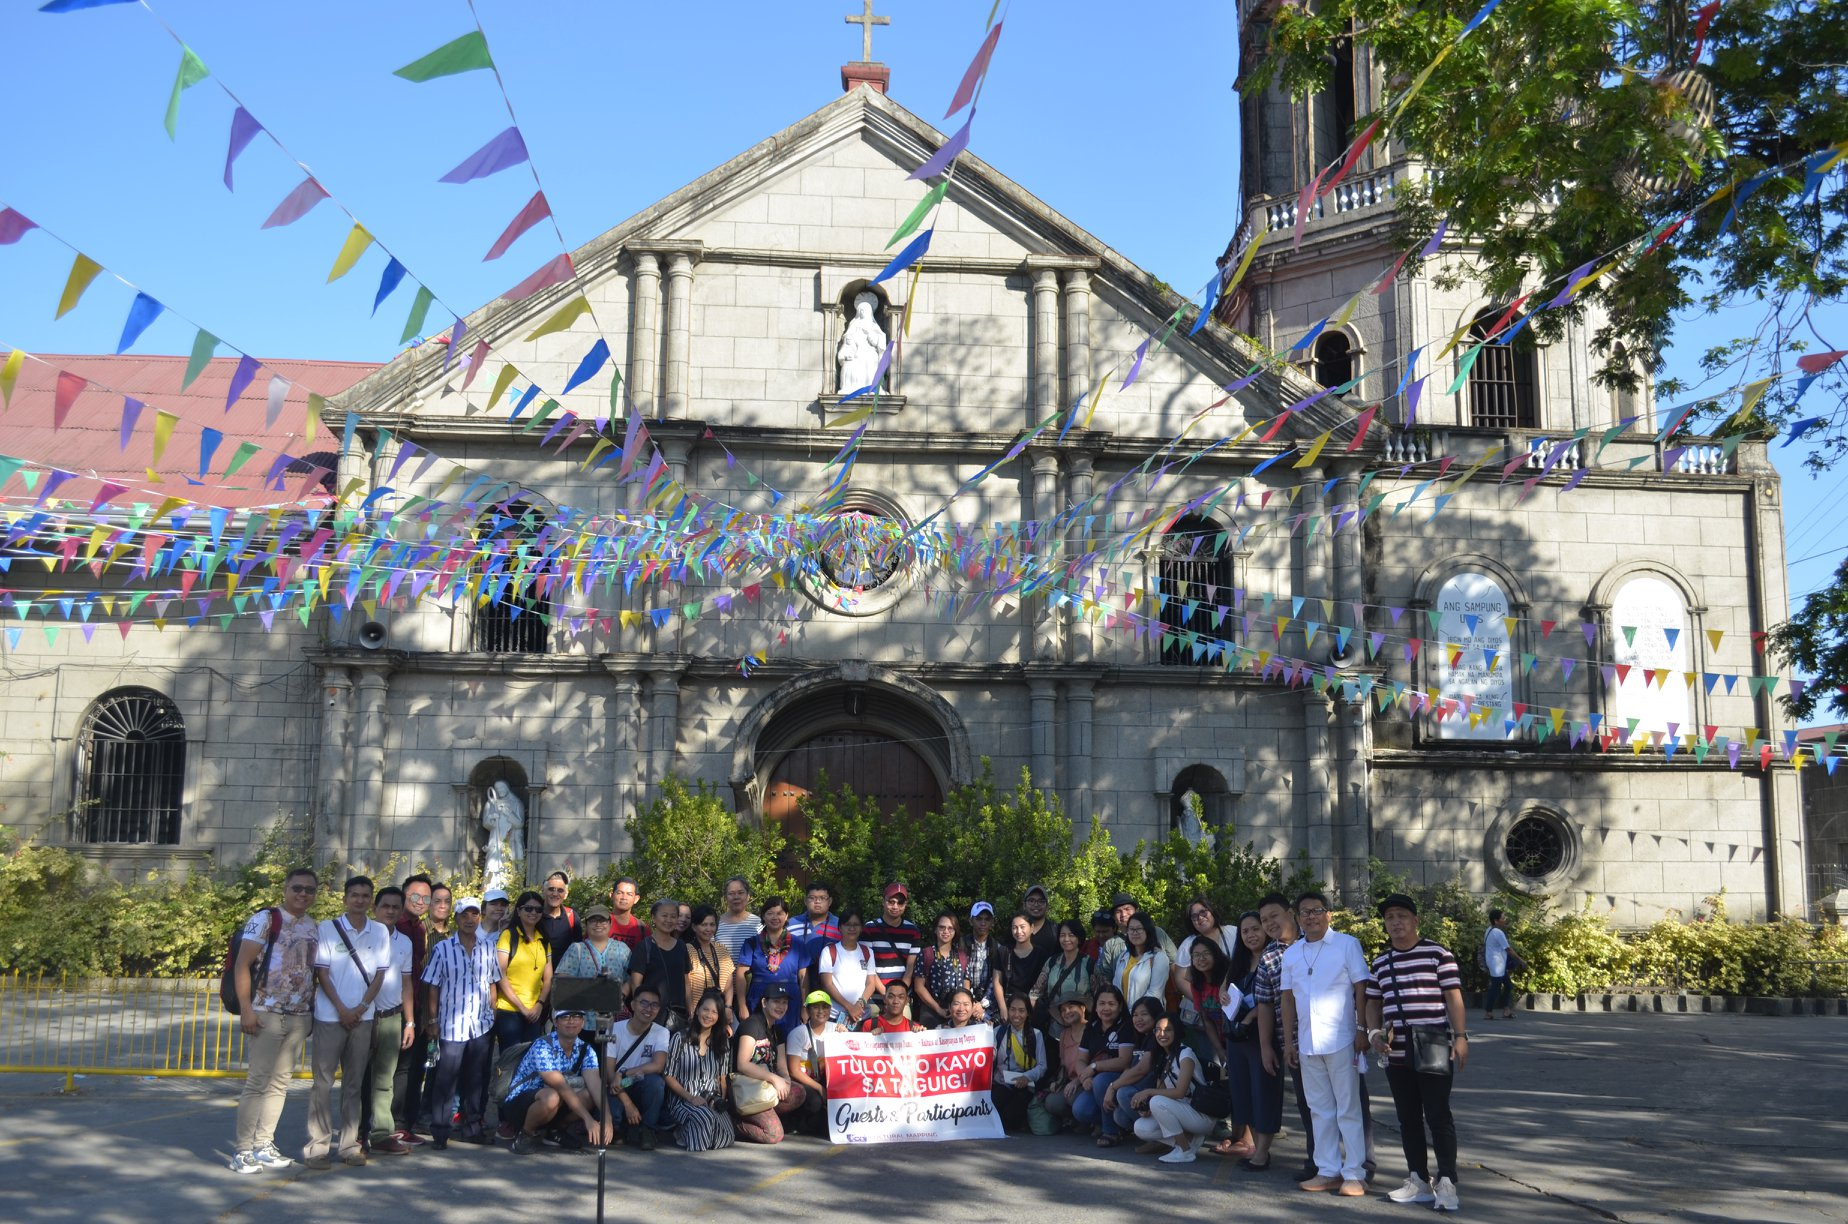 The participants of GKI's Cultural Mapping Facilitator Training pose in front of Santa Ana Church during a cultural immersion activity in the historic district of Taguig City on 29 February 2020.